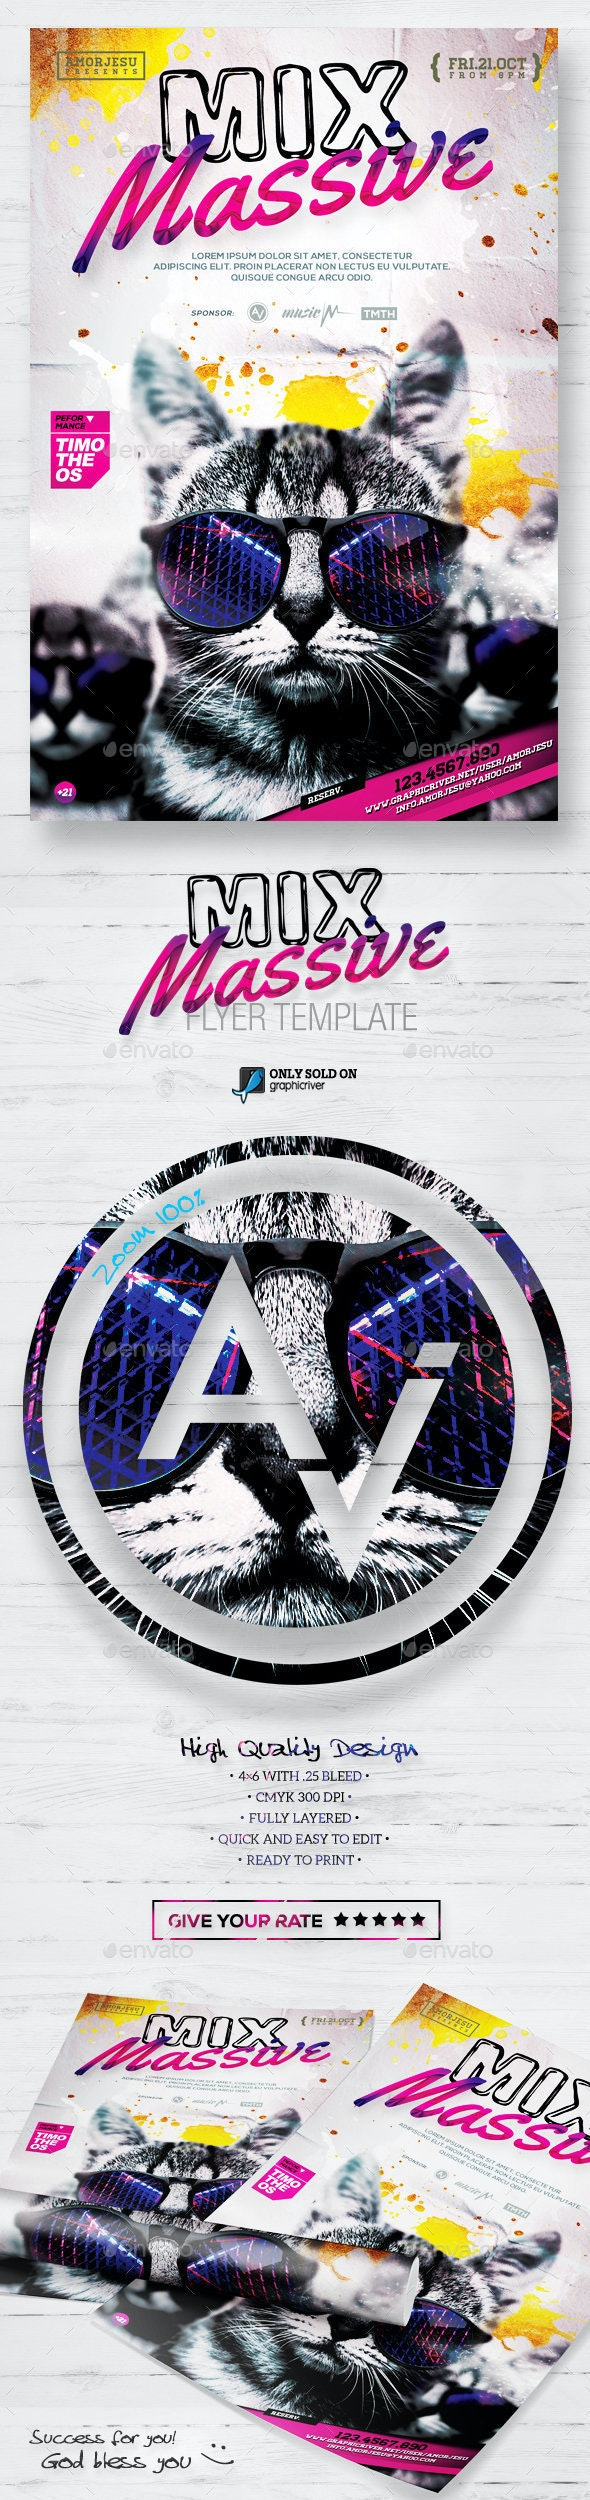 Mix Massive Flyer Template - Clubs & Parties Events